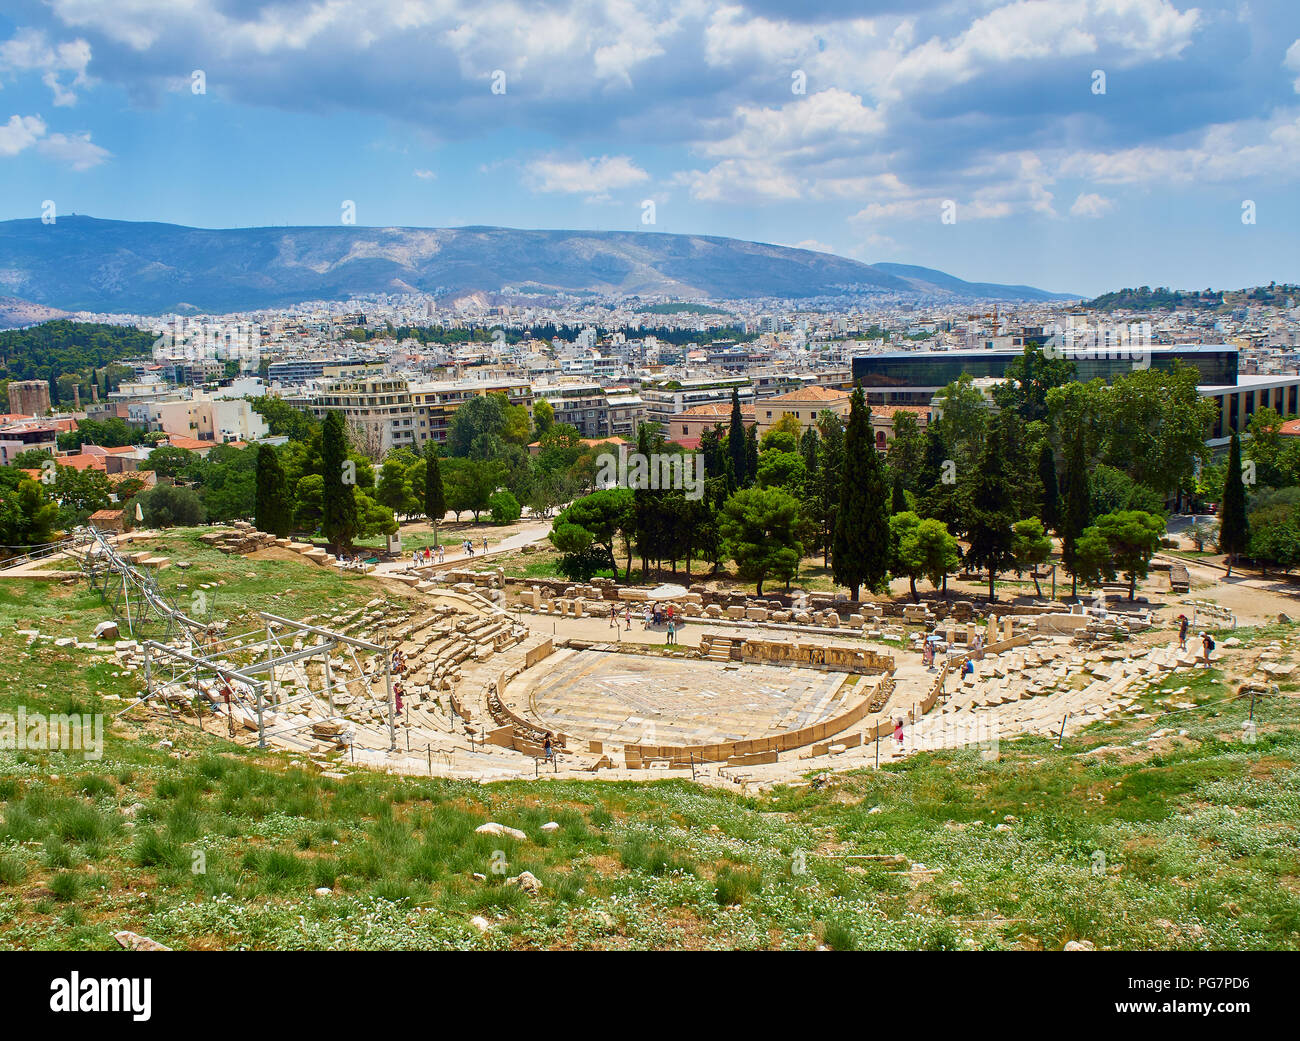 Theatre of Dionysus Eleuthereus on the south slope of the Athenian Acropolis, with the city of Athens in background. Attica region, Greece. - Stock Image